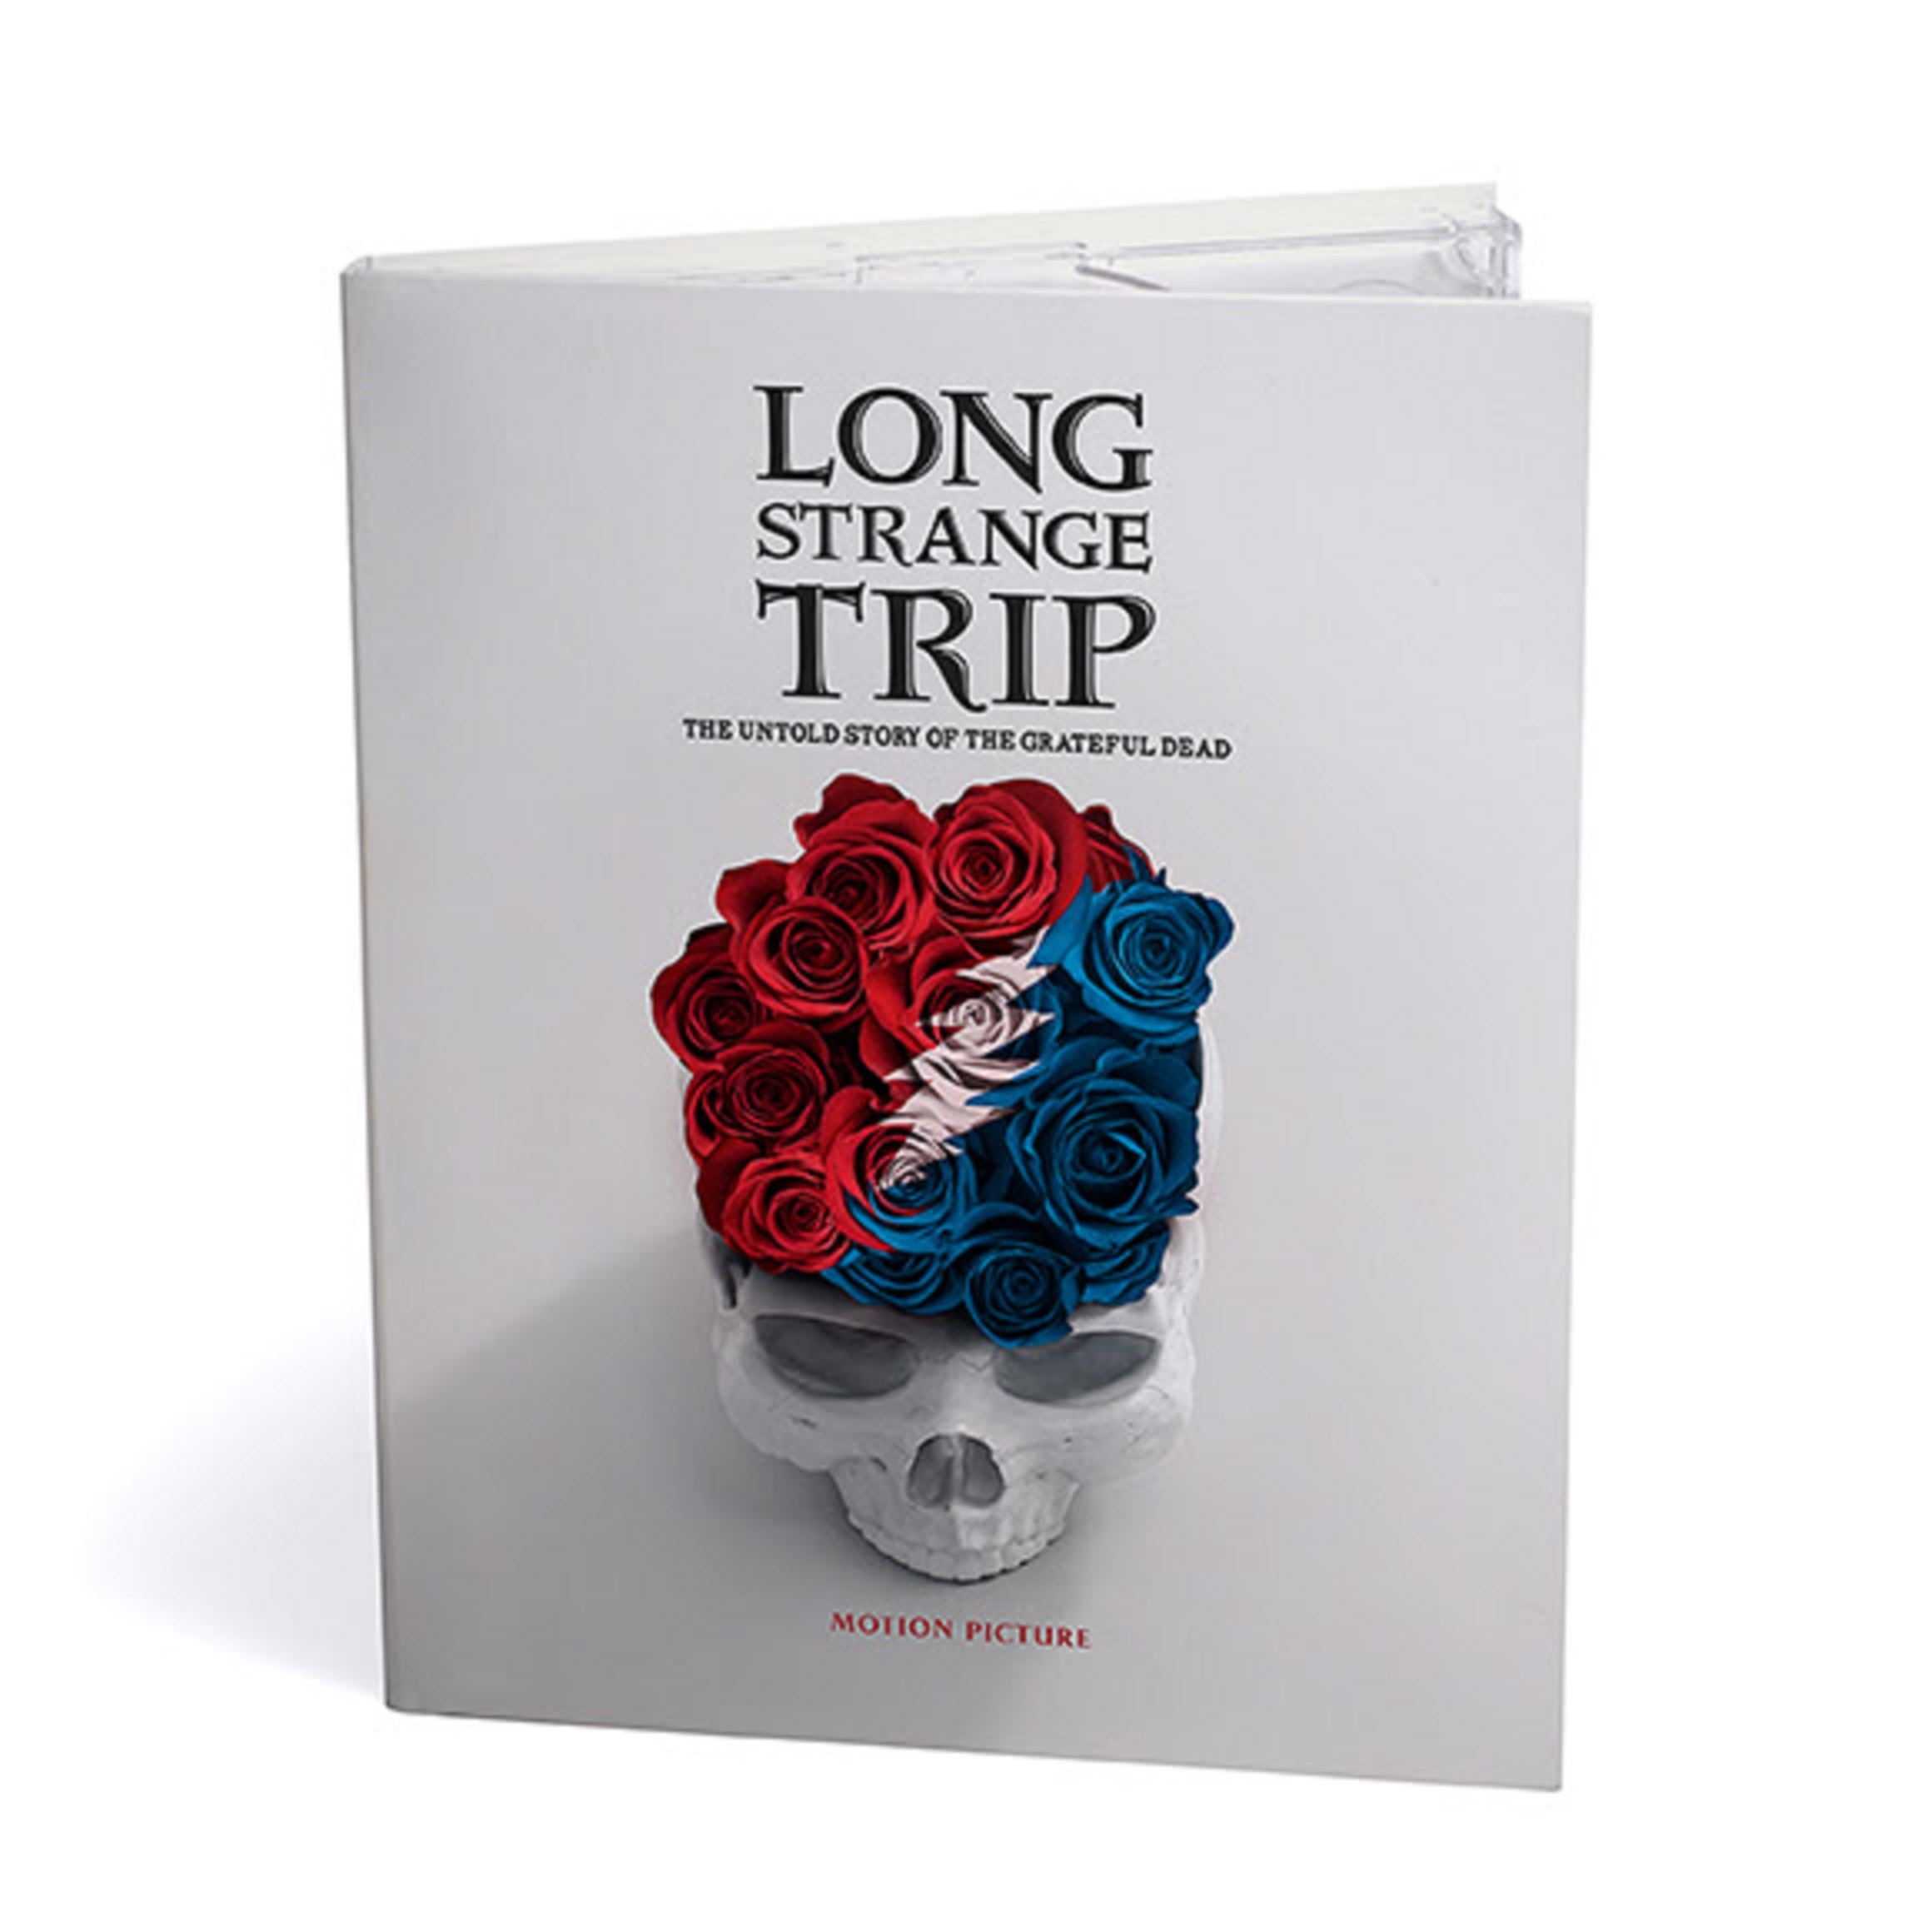 Long Strange Trip Coming To DVD and Blu-Ray